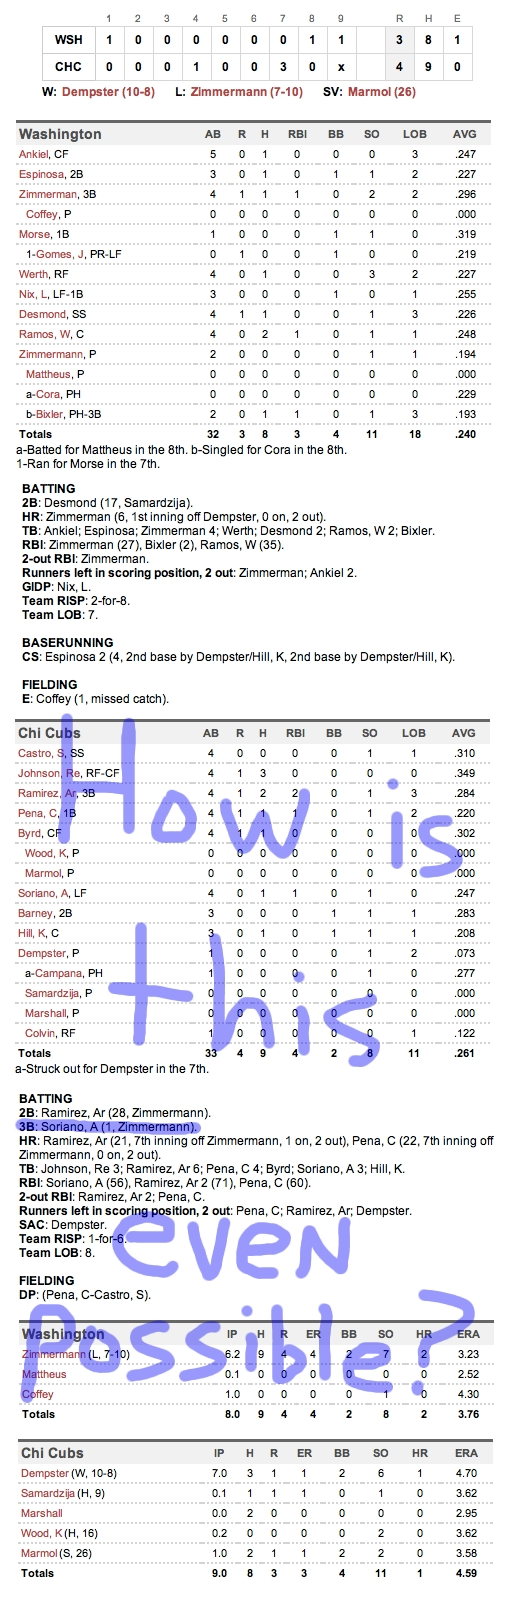 Enhanced Box Score: Nationals 3, Cubs 4 – August 11, 2011